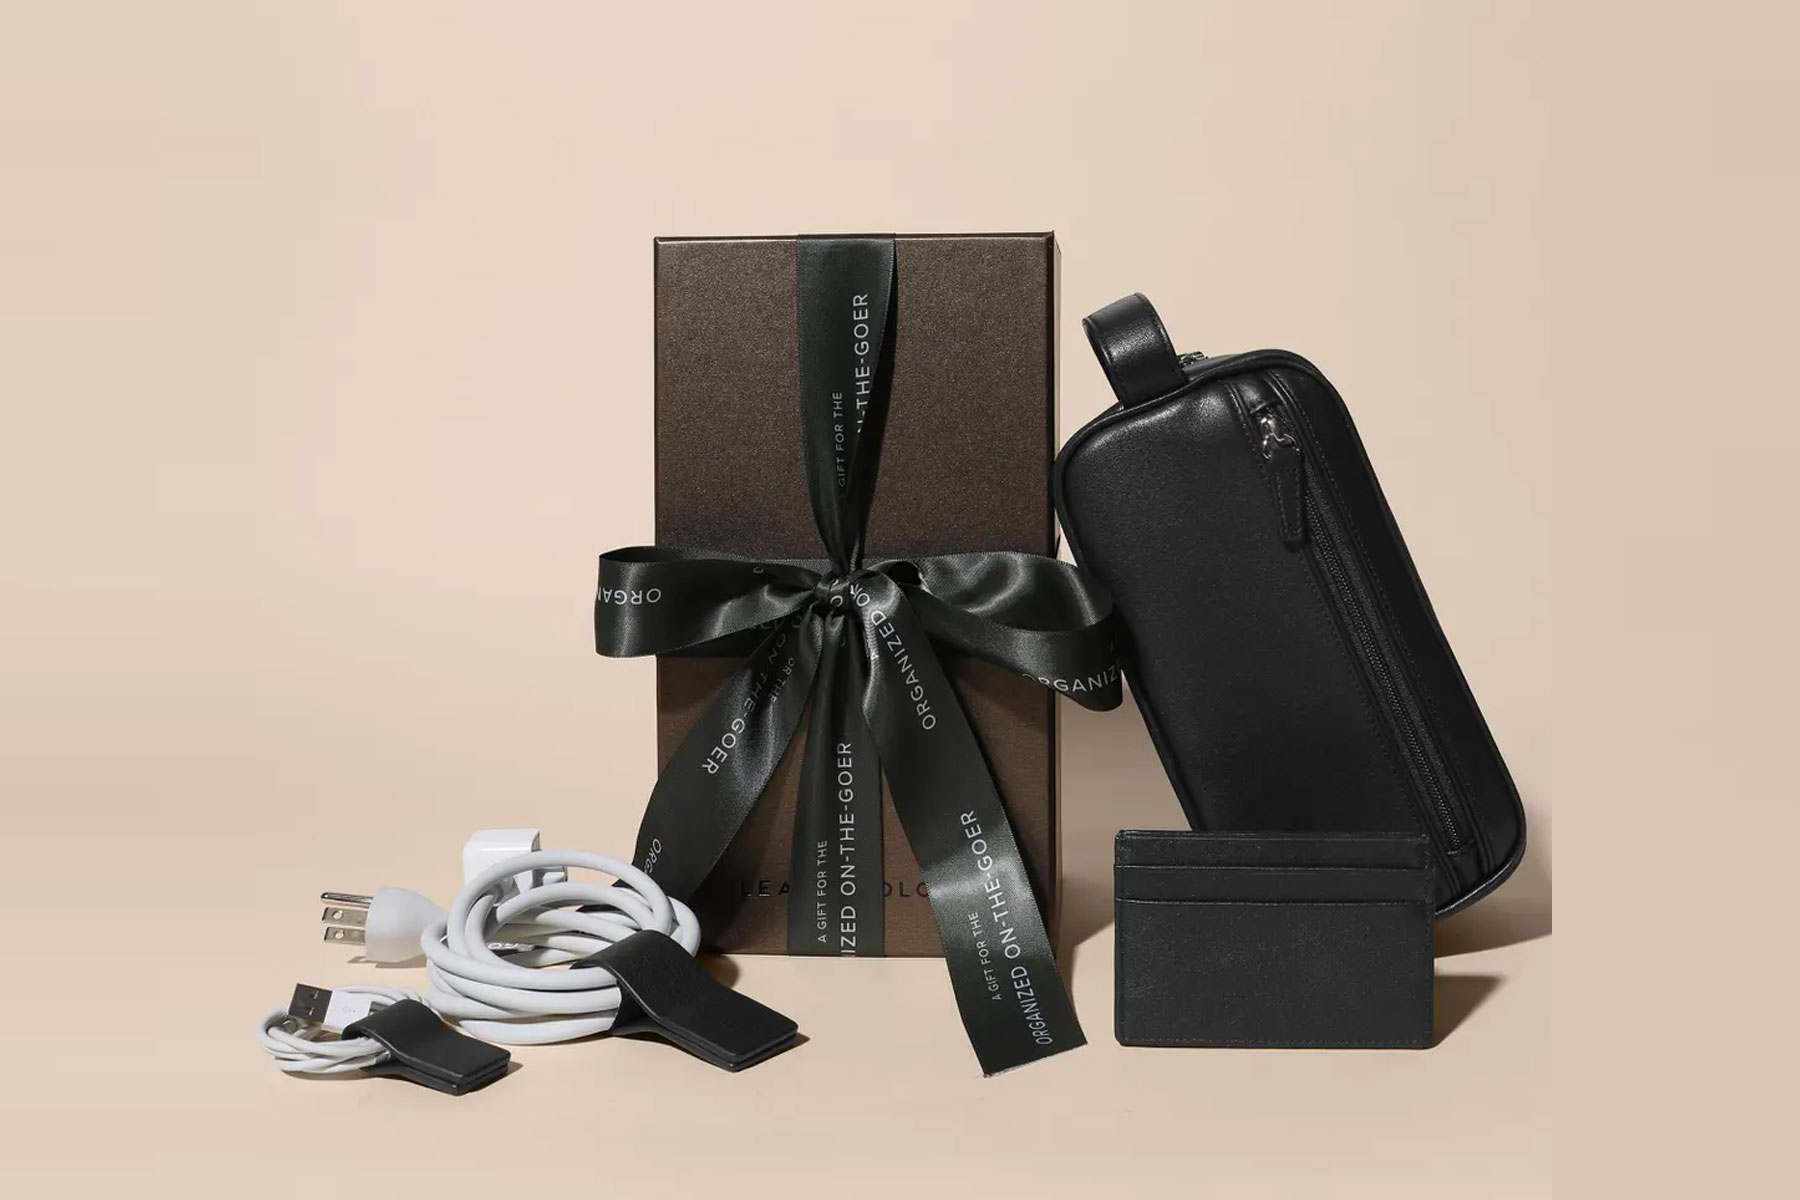 Black leather travel cases and gift box